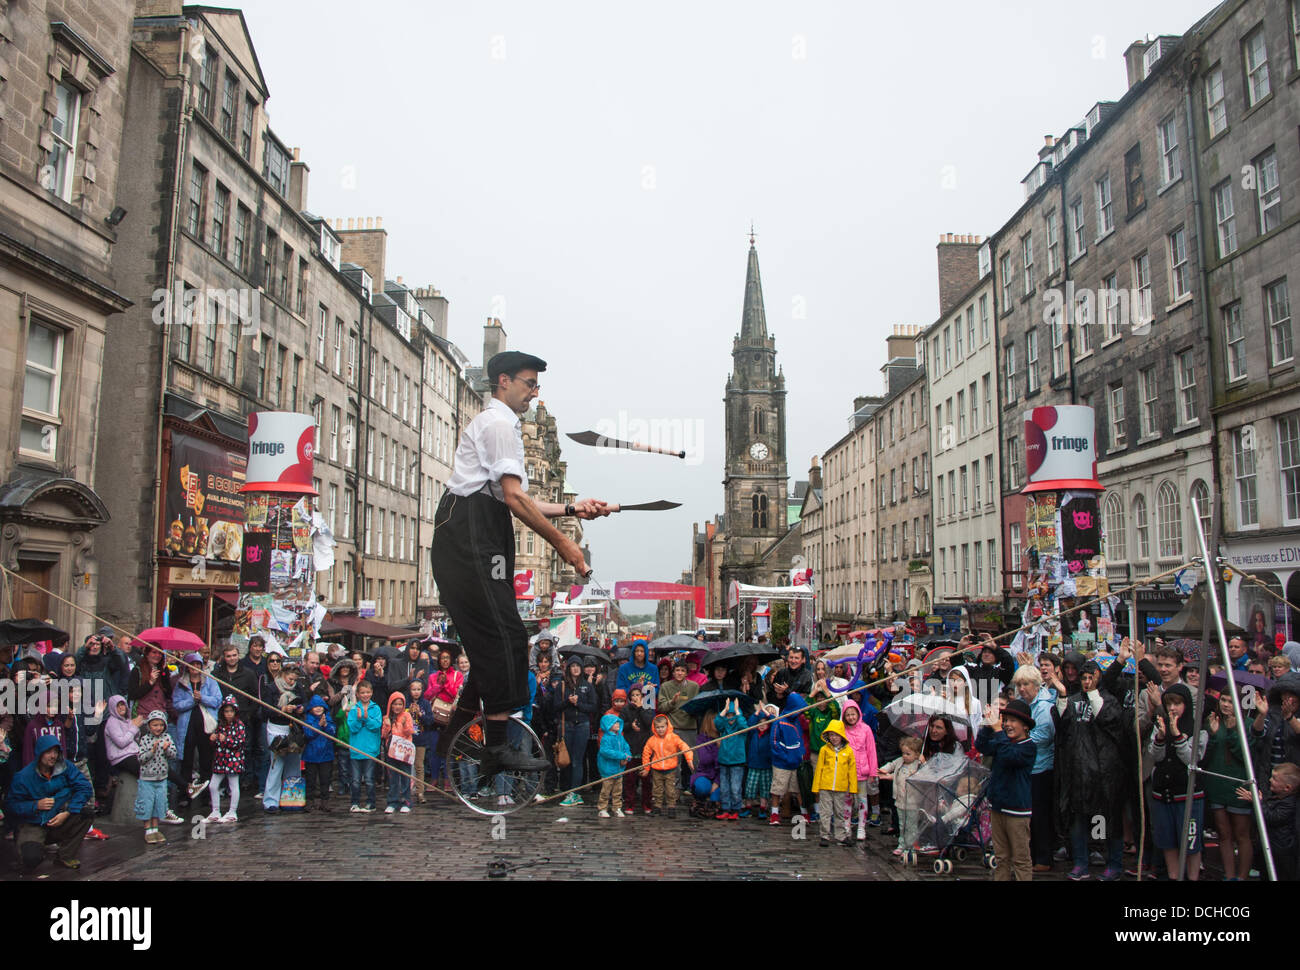 Edinburgh, UK. 18th Aug, 2013. A uni cycling Frenchman on a tight rope juggles daggers in the rain on the Royal - Stock Image